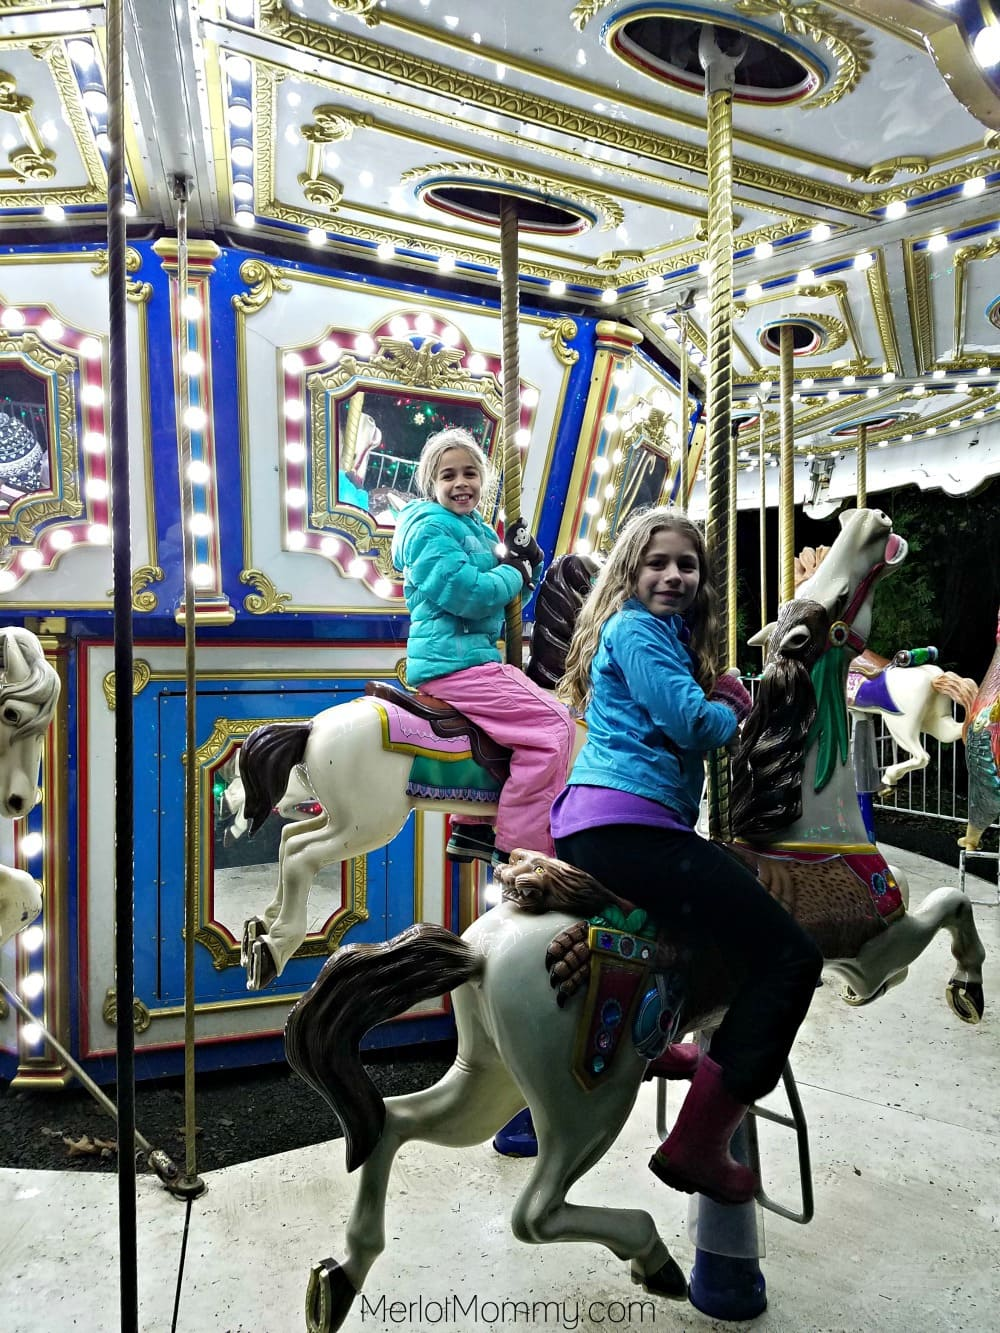 2016 Zoolights at the Oregon Zoo - Carousel